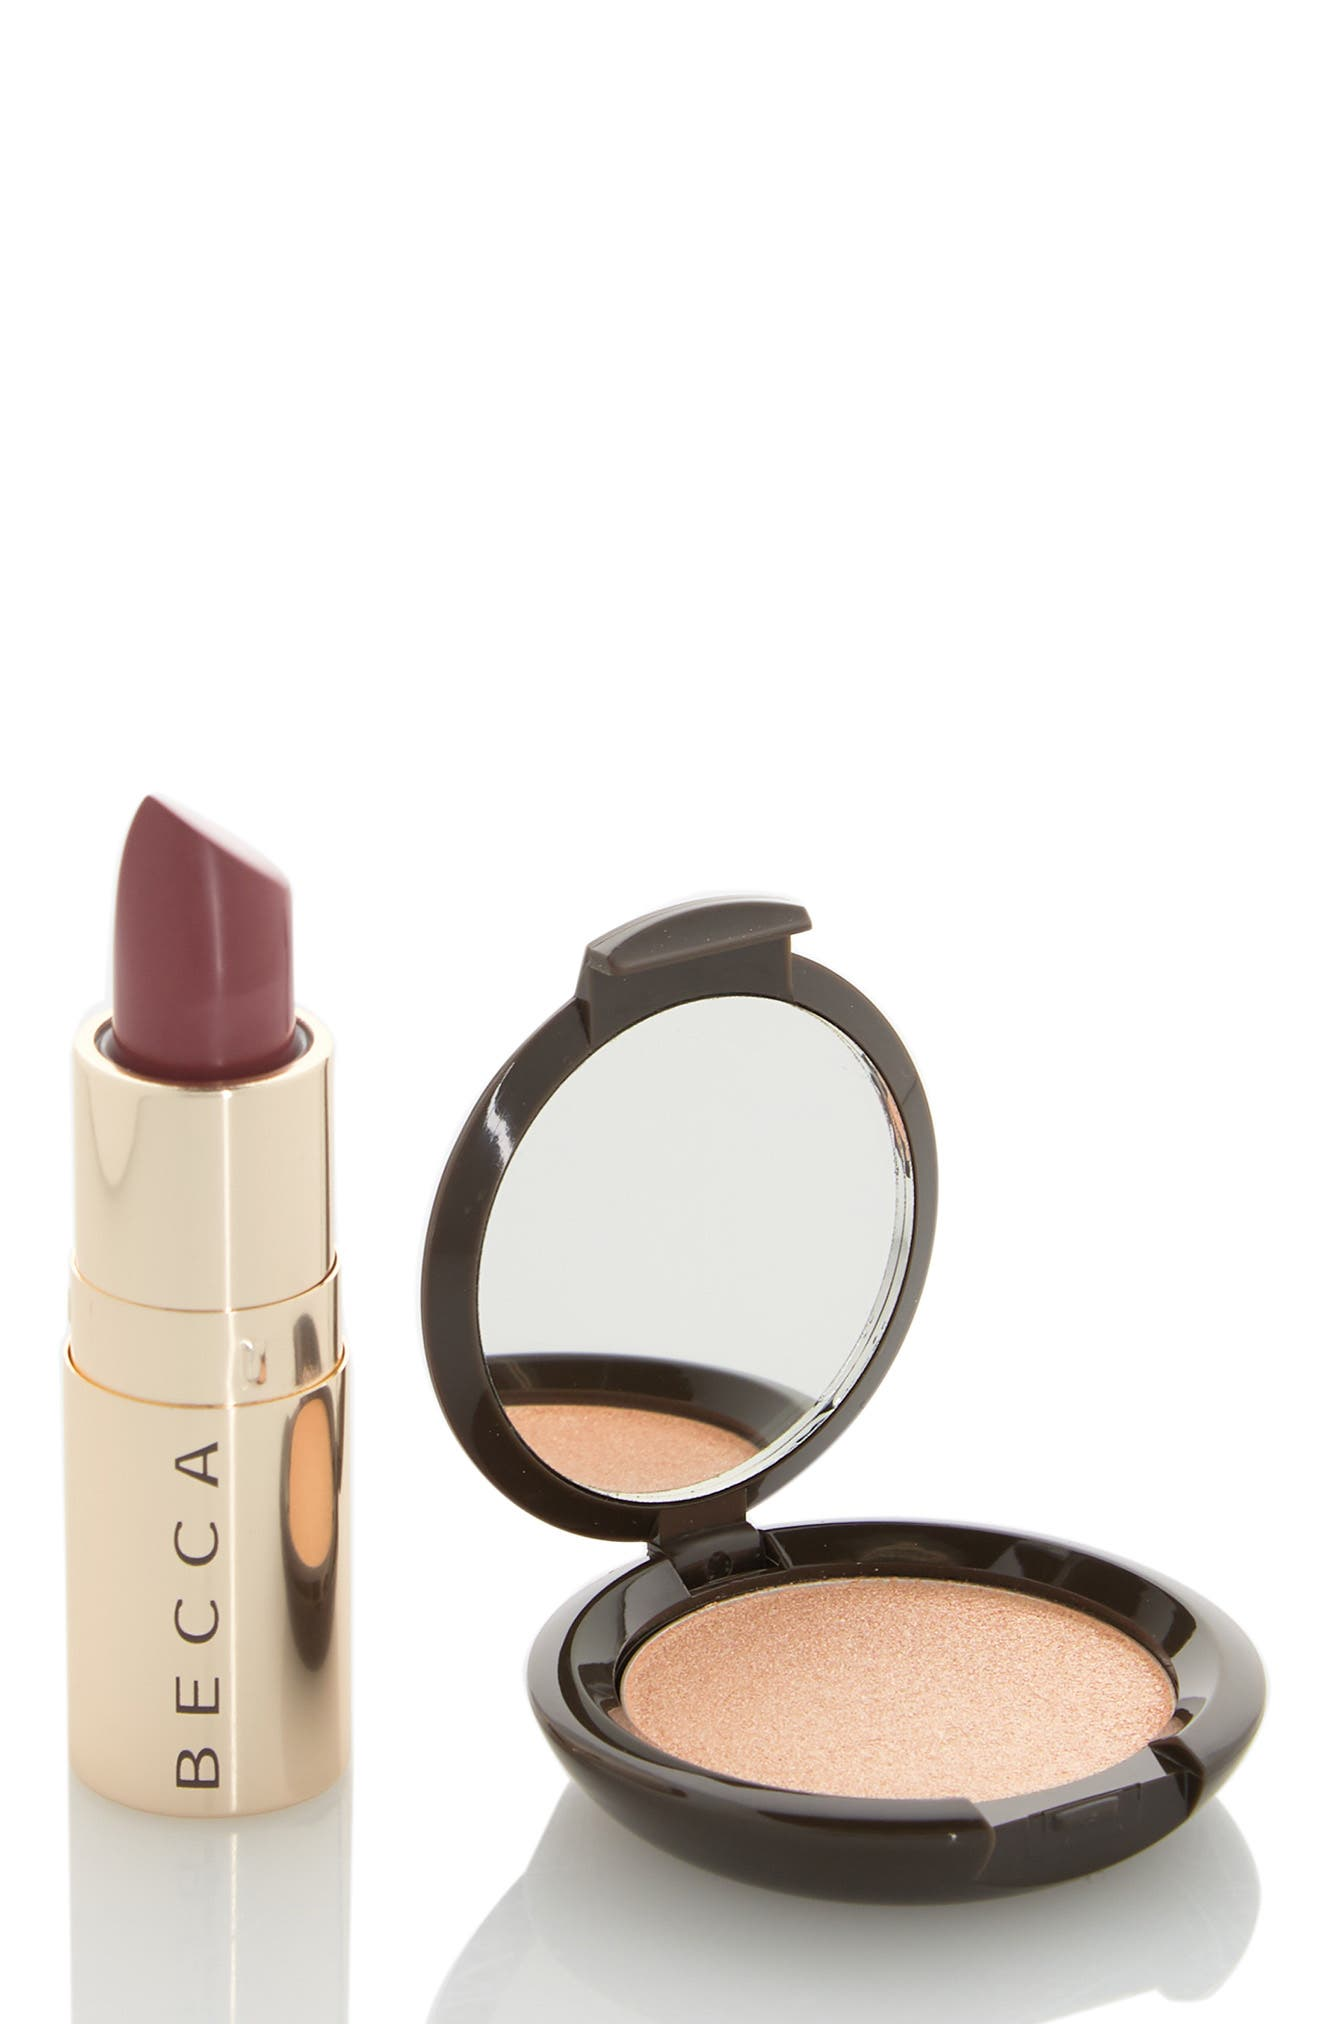 Image of BECCA Cosmetics BECCA Mini Highlighter + Lipstick Duo